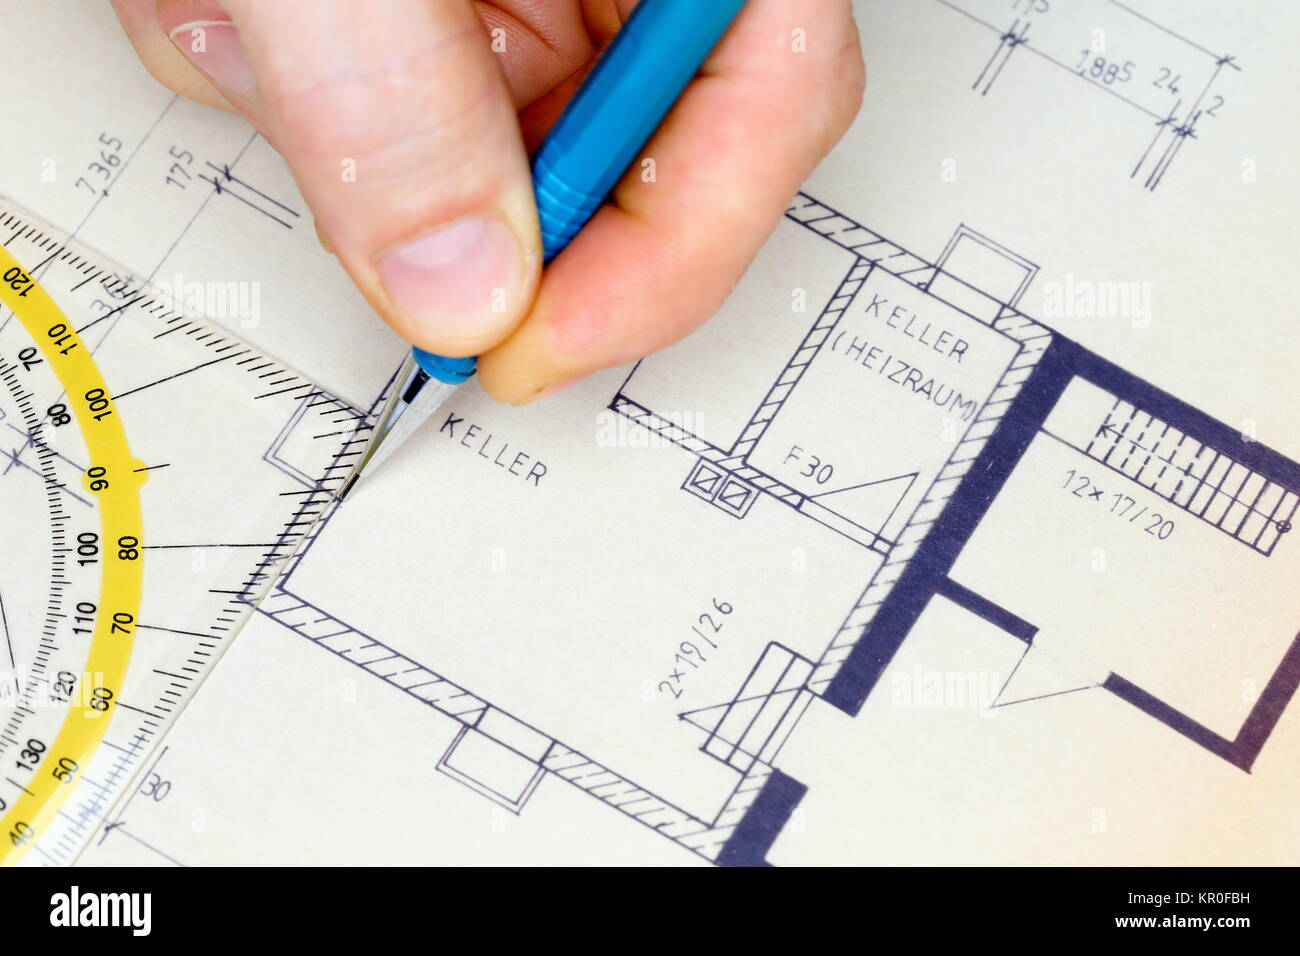 Architectural Drawing Template Stock Photos & Architectural Drawing ...